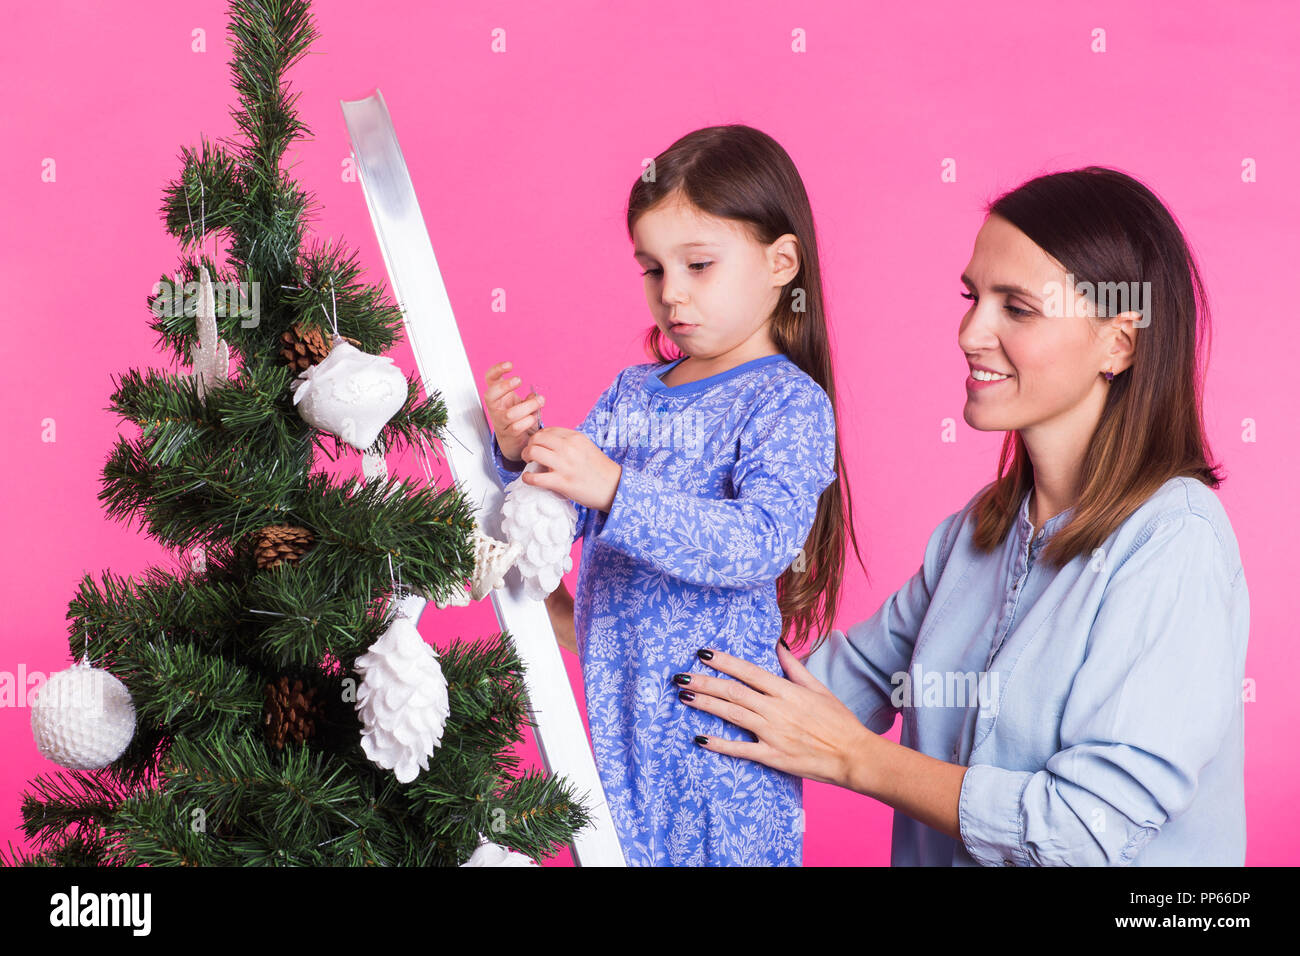 christmas childhood and people concept child girl standing on step ladder decorating the christmas tree with her mother on pink background